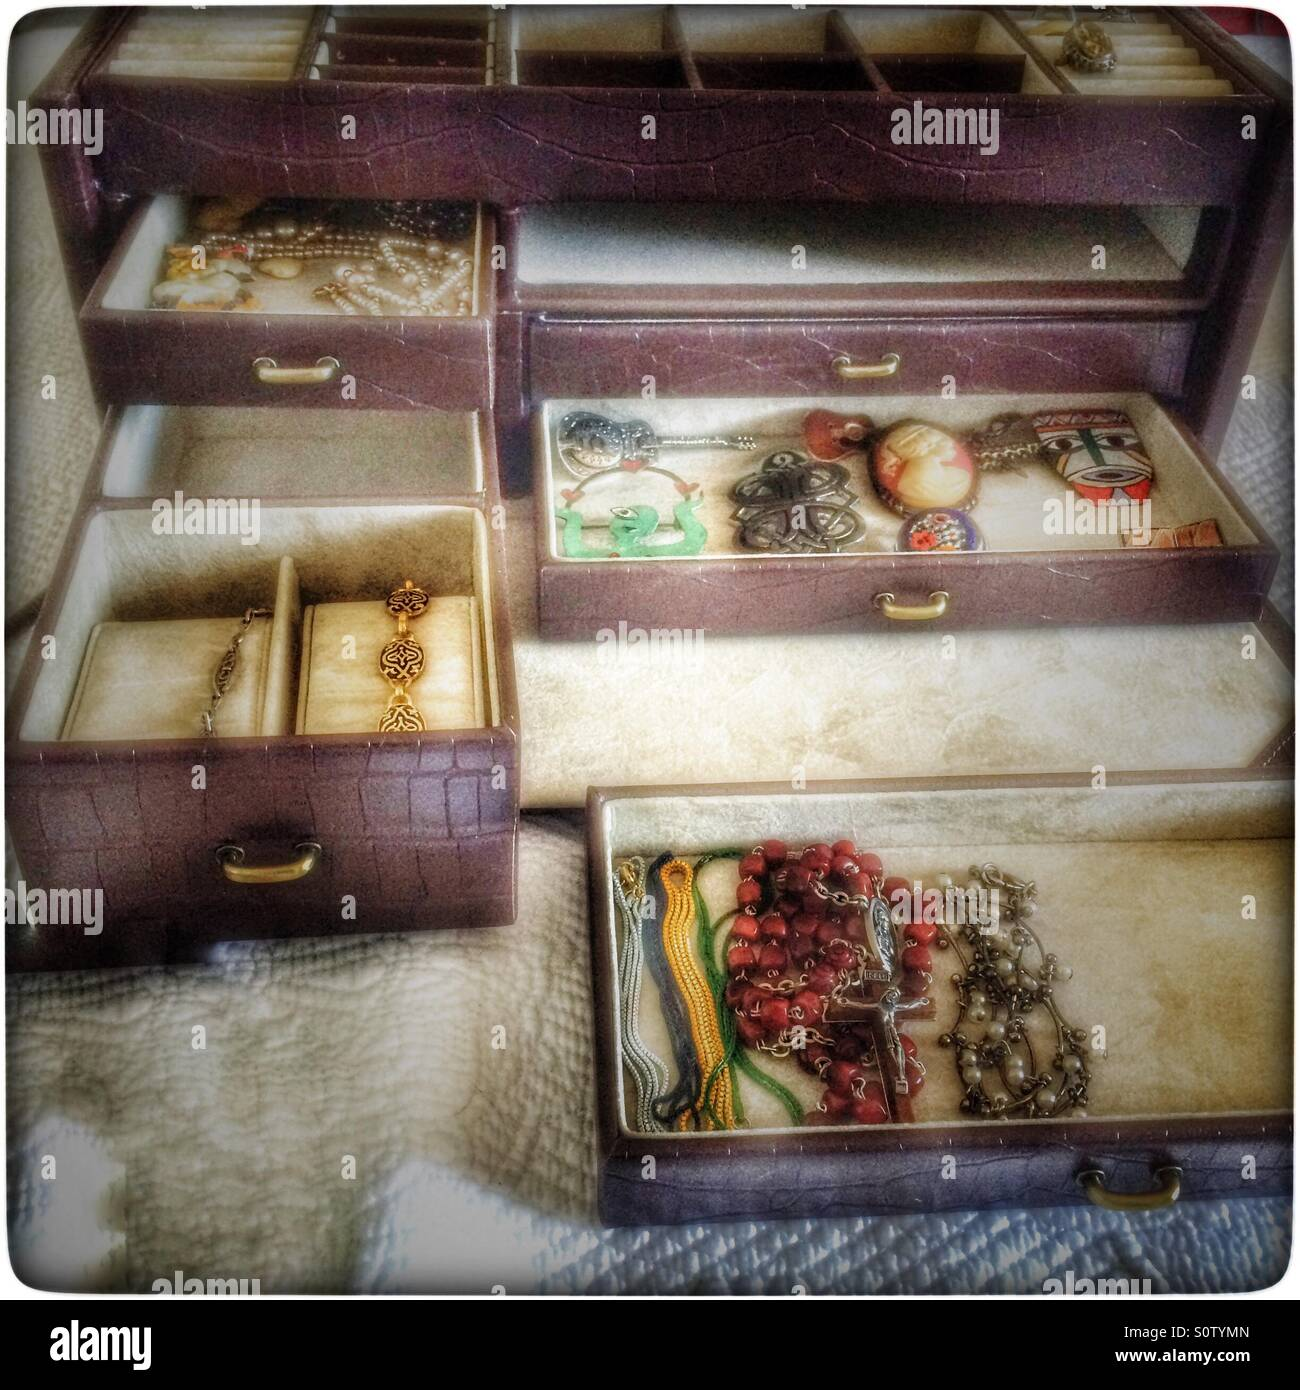 Jewelry box. - Stock Image